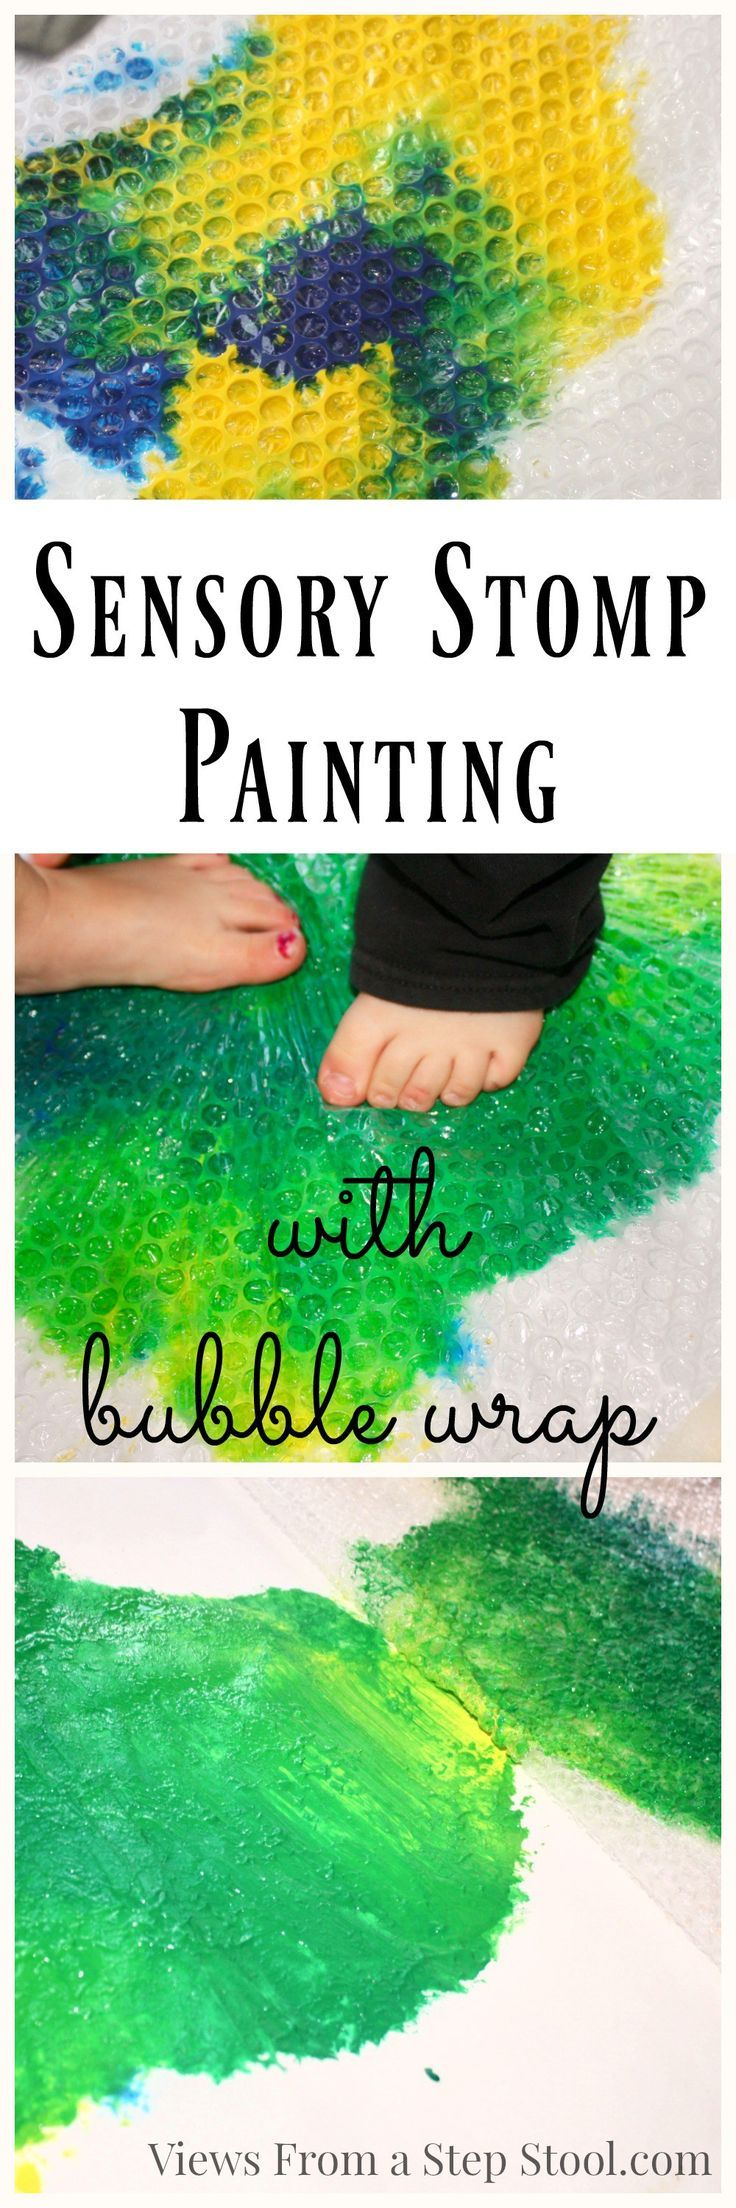 sensory stomp painting with bubble wrap process art plays and